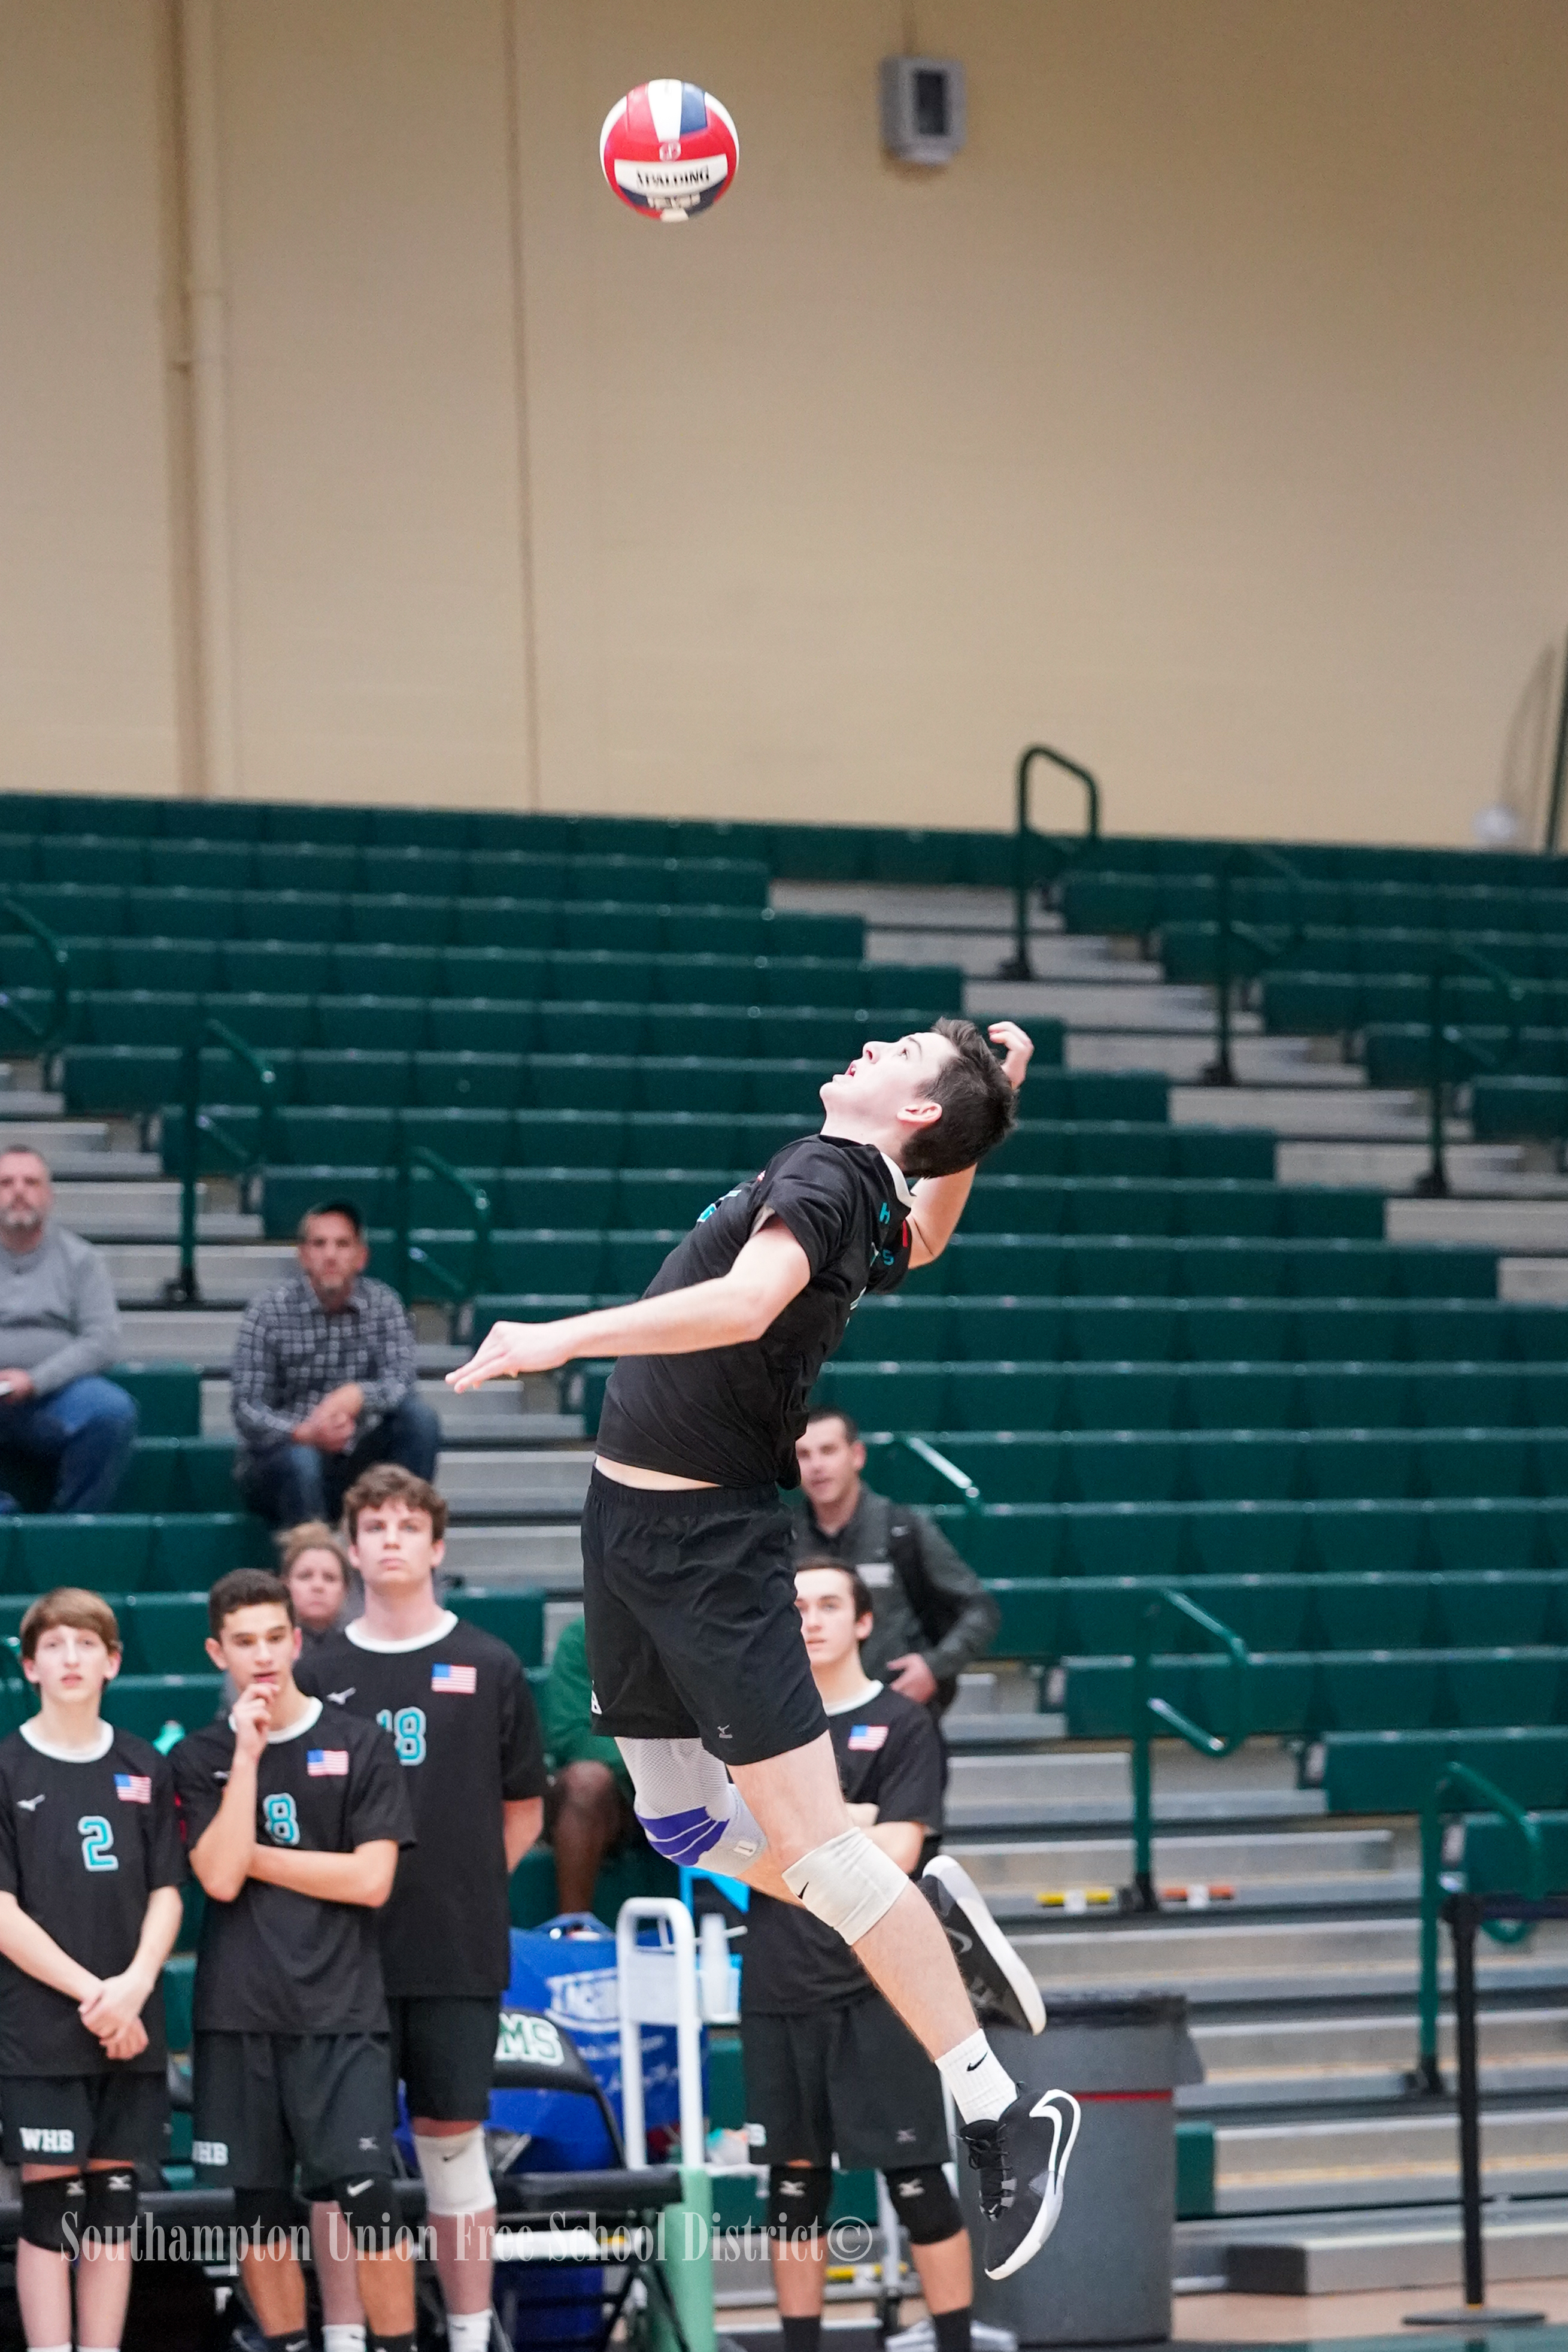 Westhampton Beach junior Ryan Barnett led the team with 18 kills on Tuesday night.